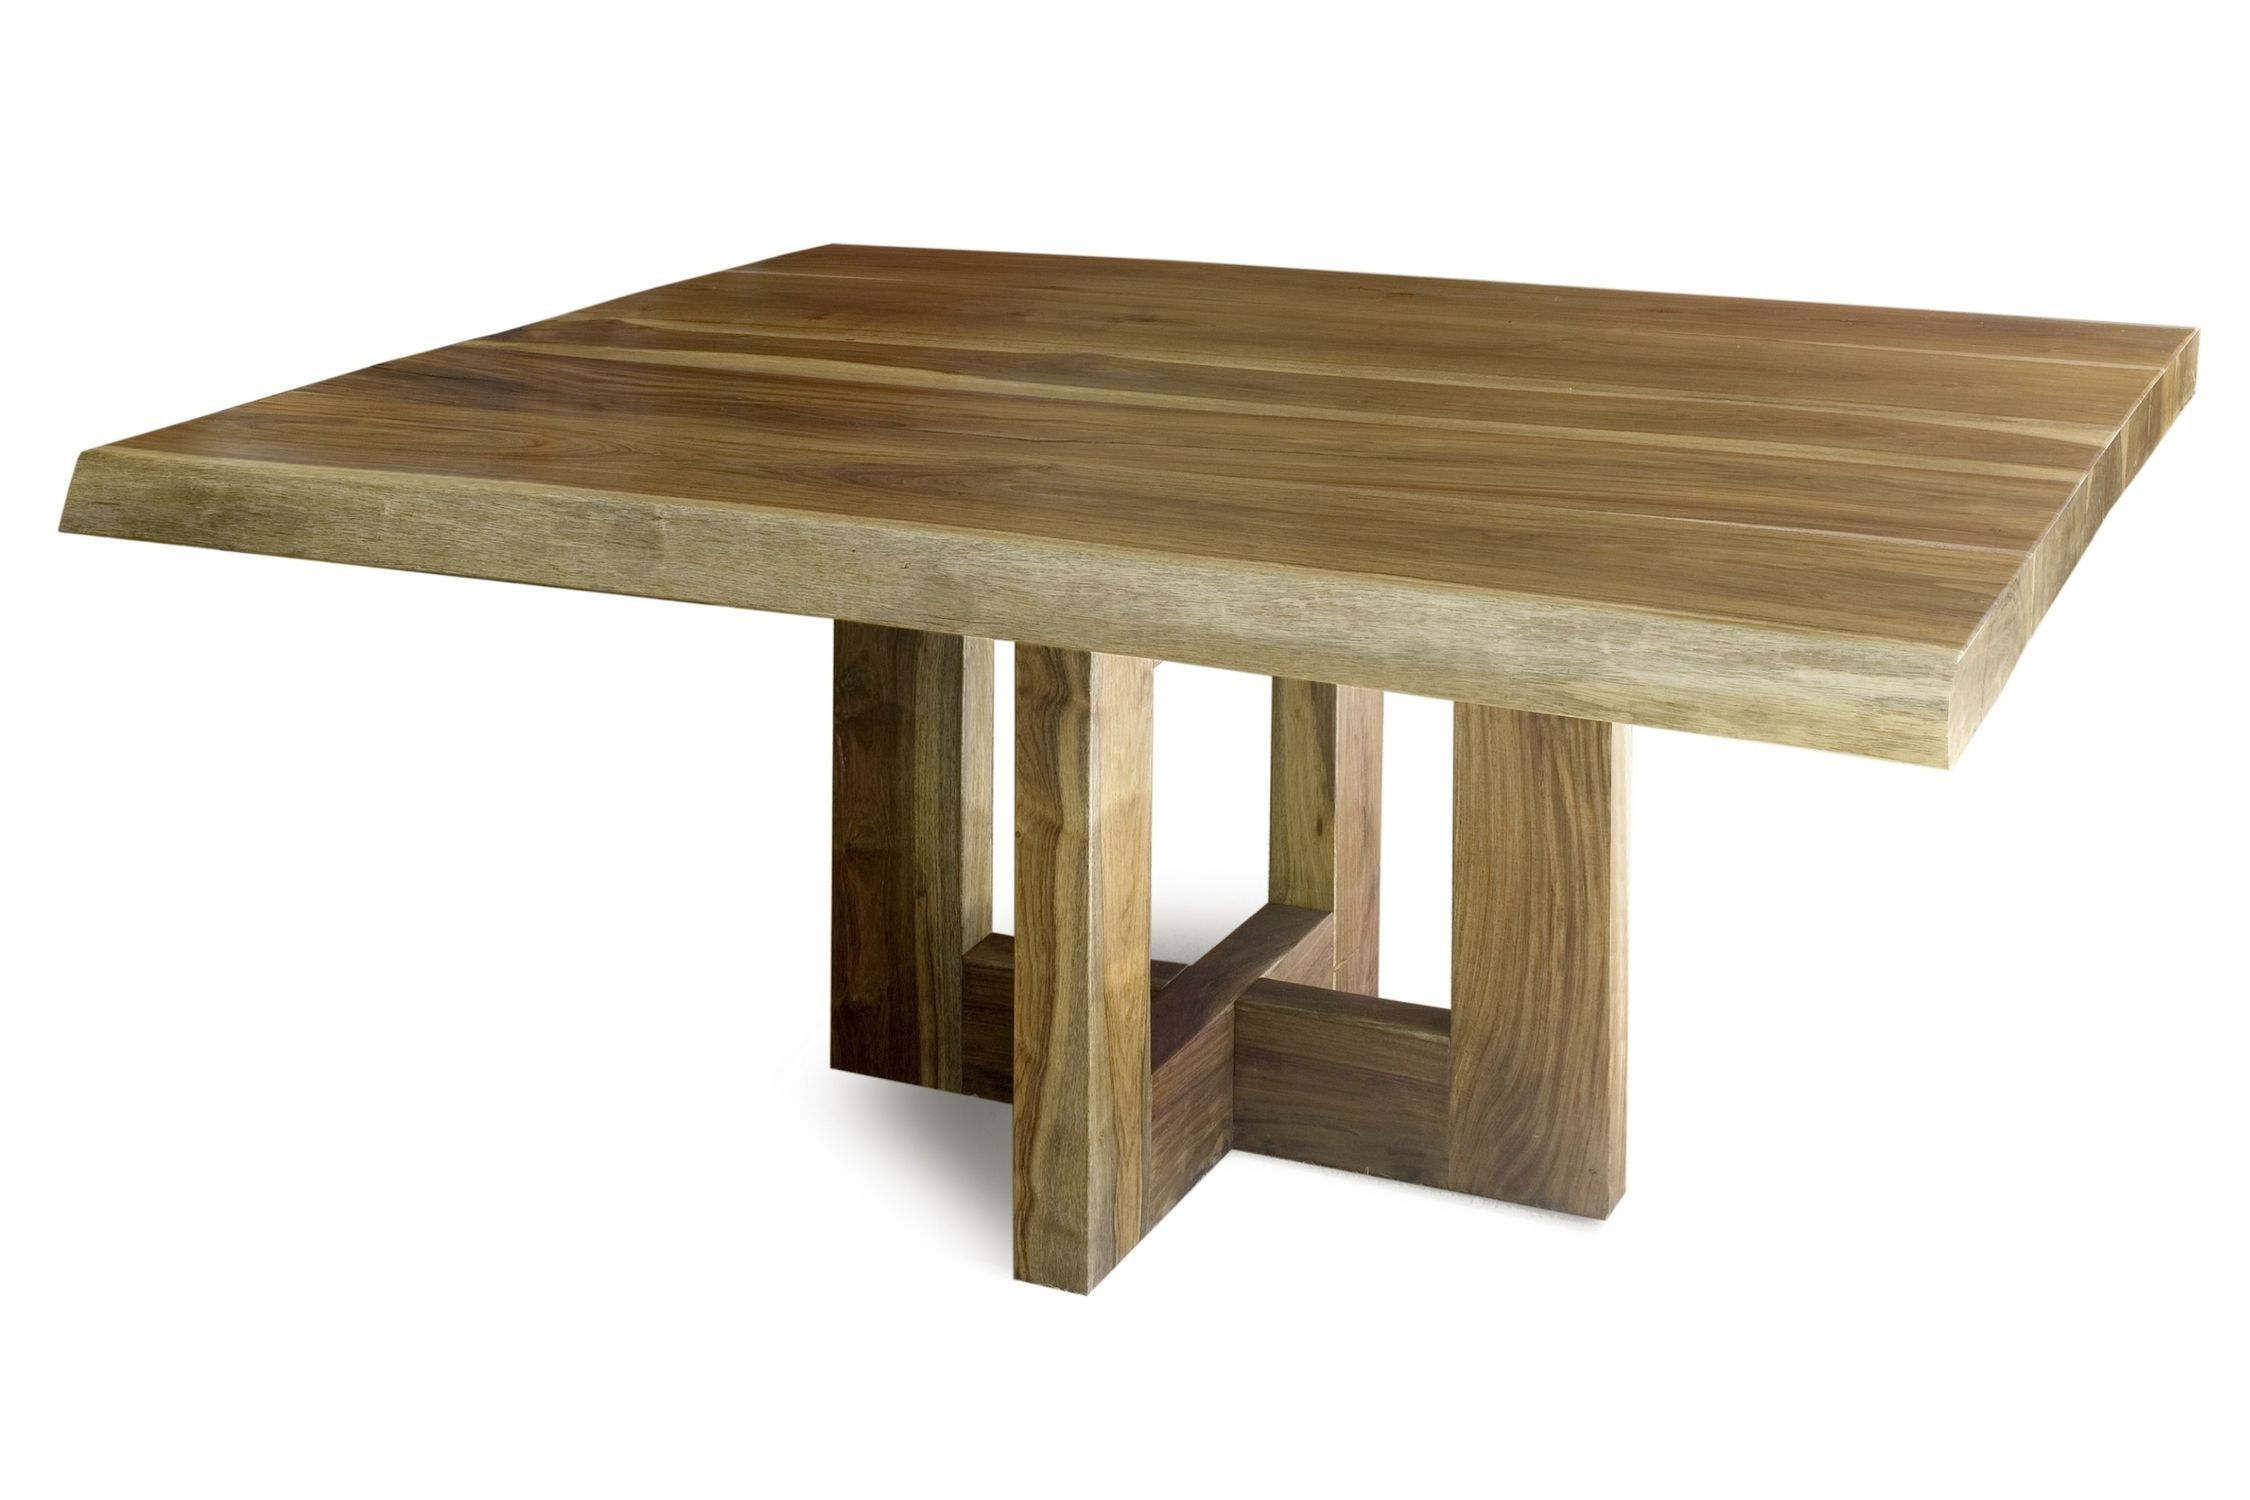 Contemporary rectangle unfinished reclaimed wood table for for Wood modern dining table